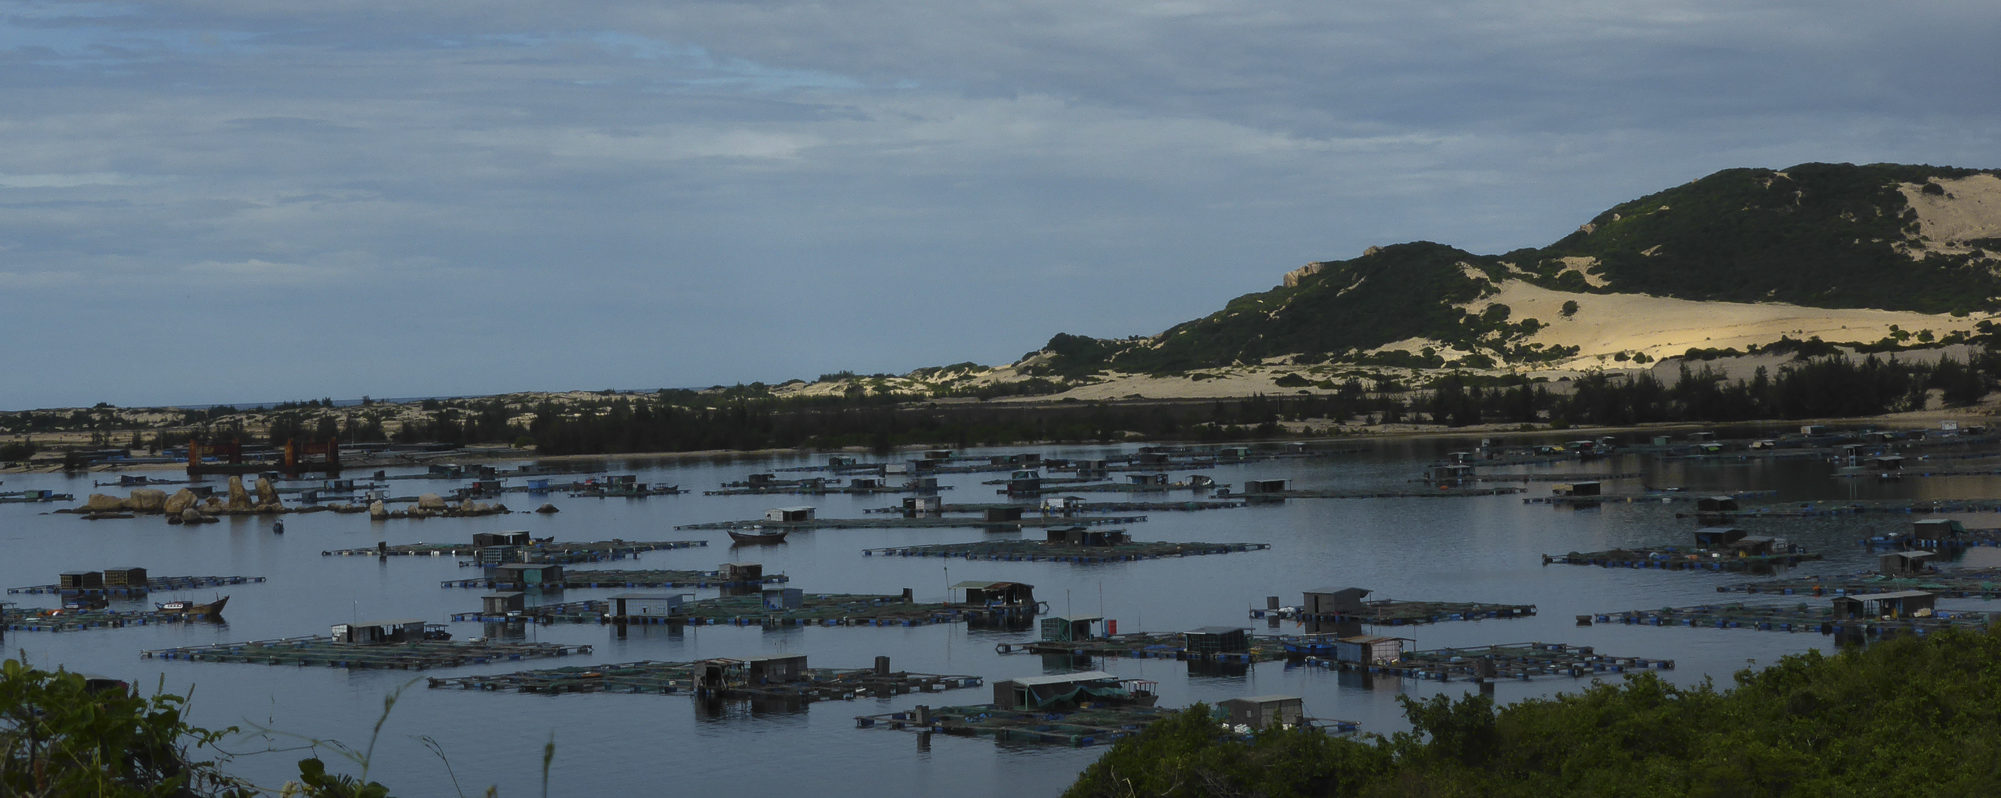 Shrimp farms off the coast of Whale Island in Vietnam. Aquaculture, like other meat production, typically uses large quantities and several kinds of antibiotics. Photograph: -JvL-/flickr